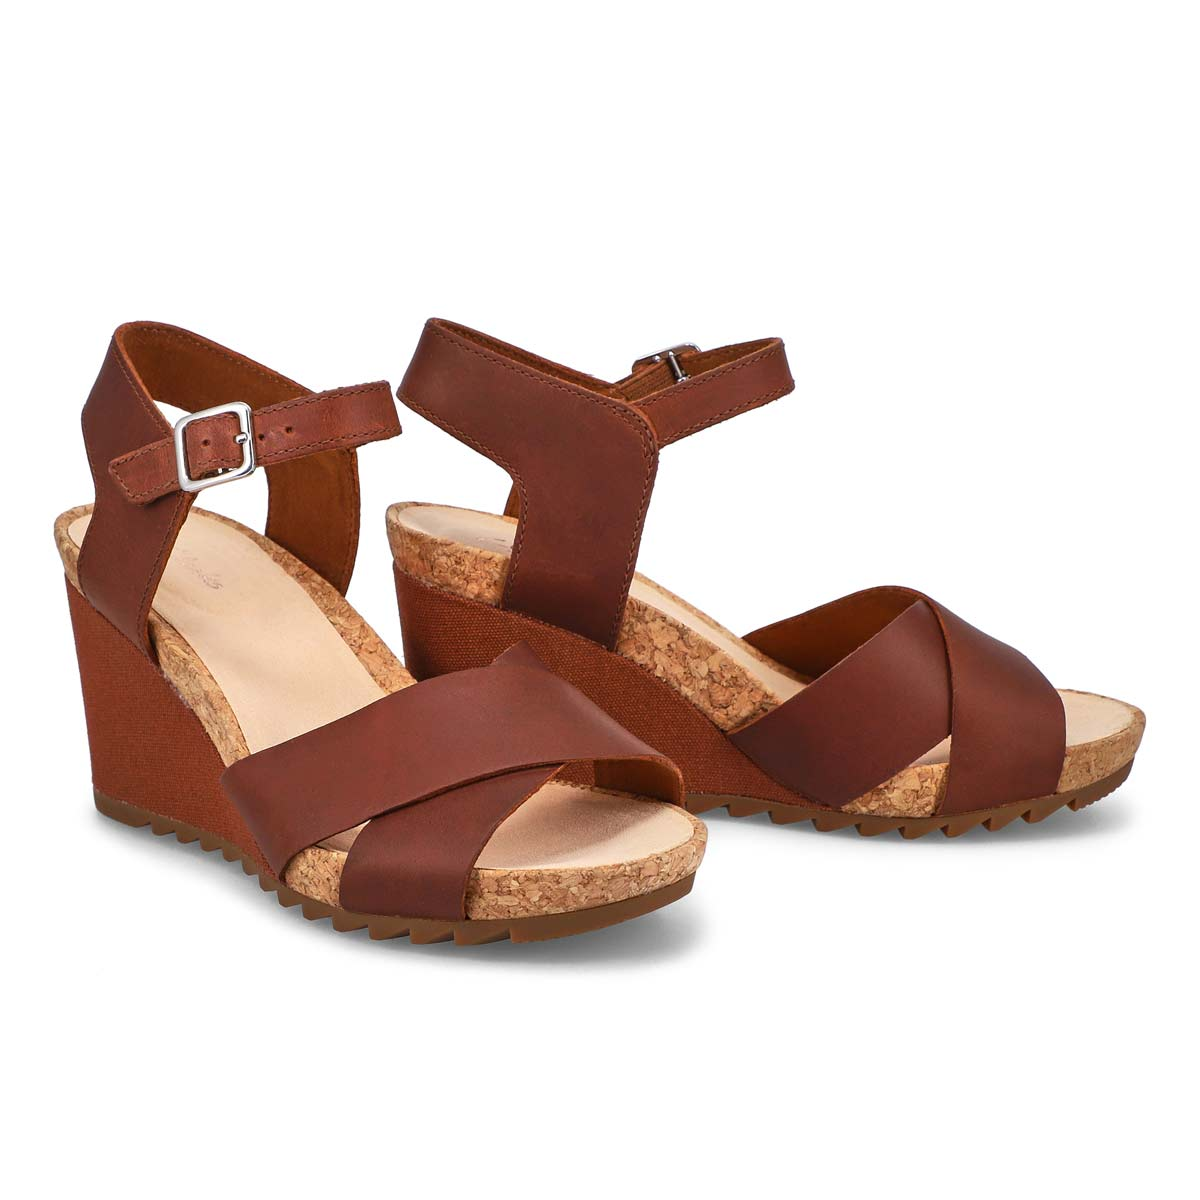 Lds Flex Sun tan wedge sandal